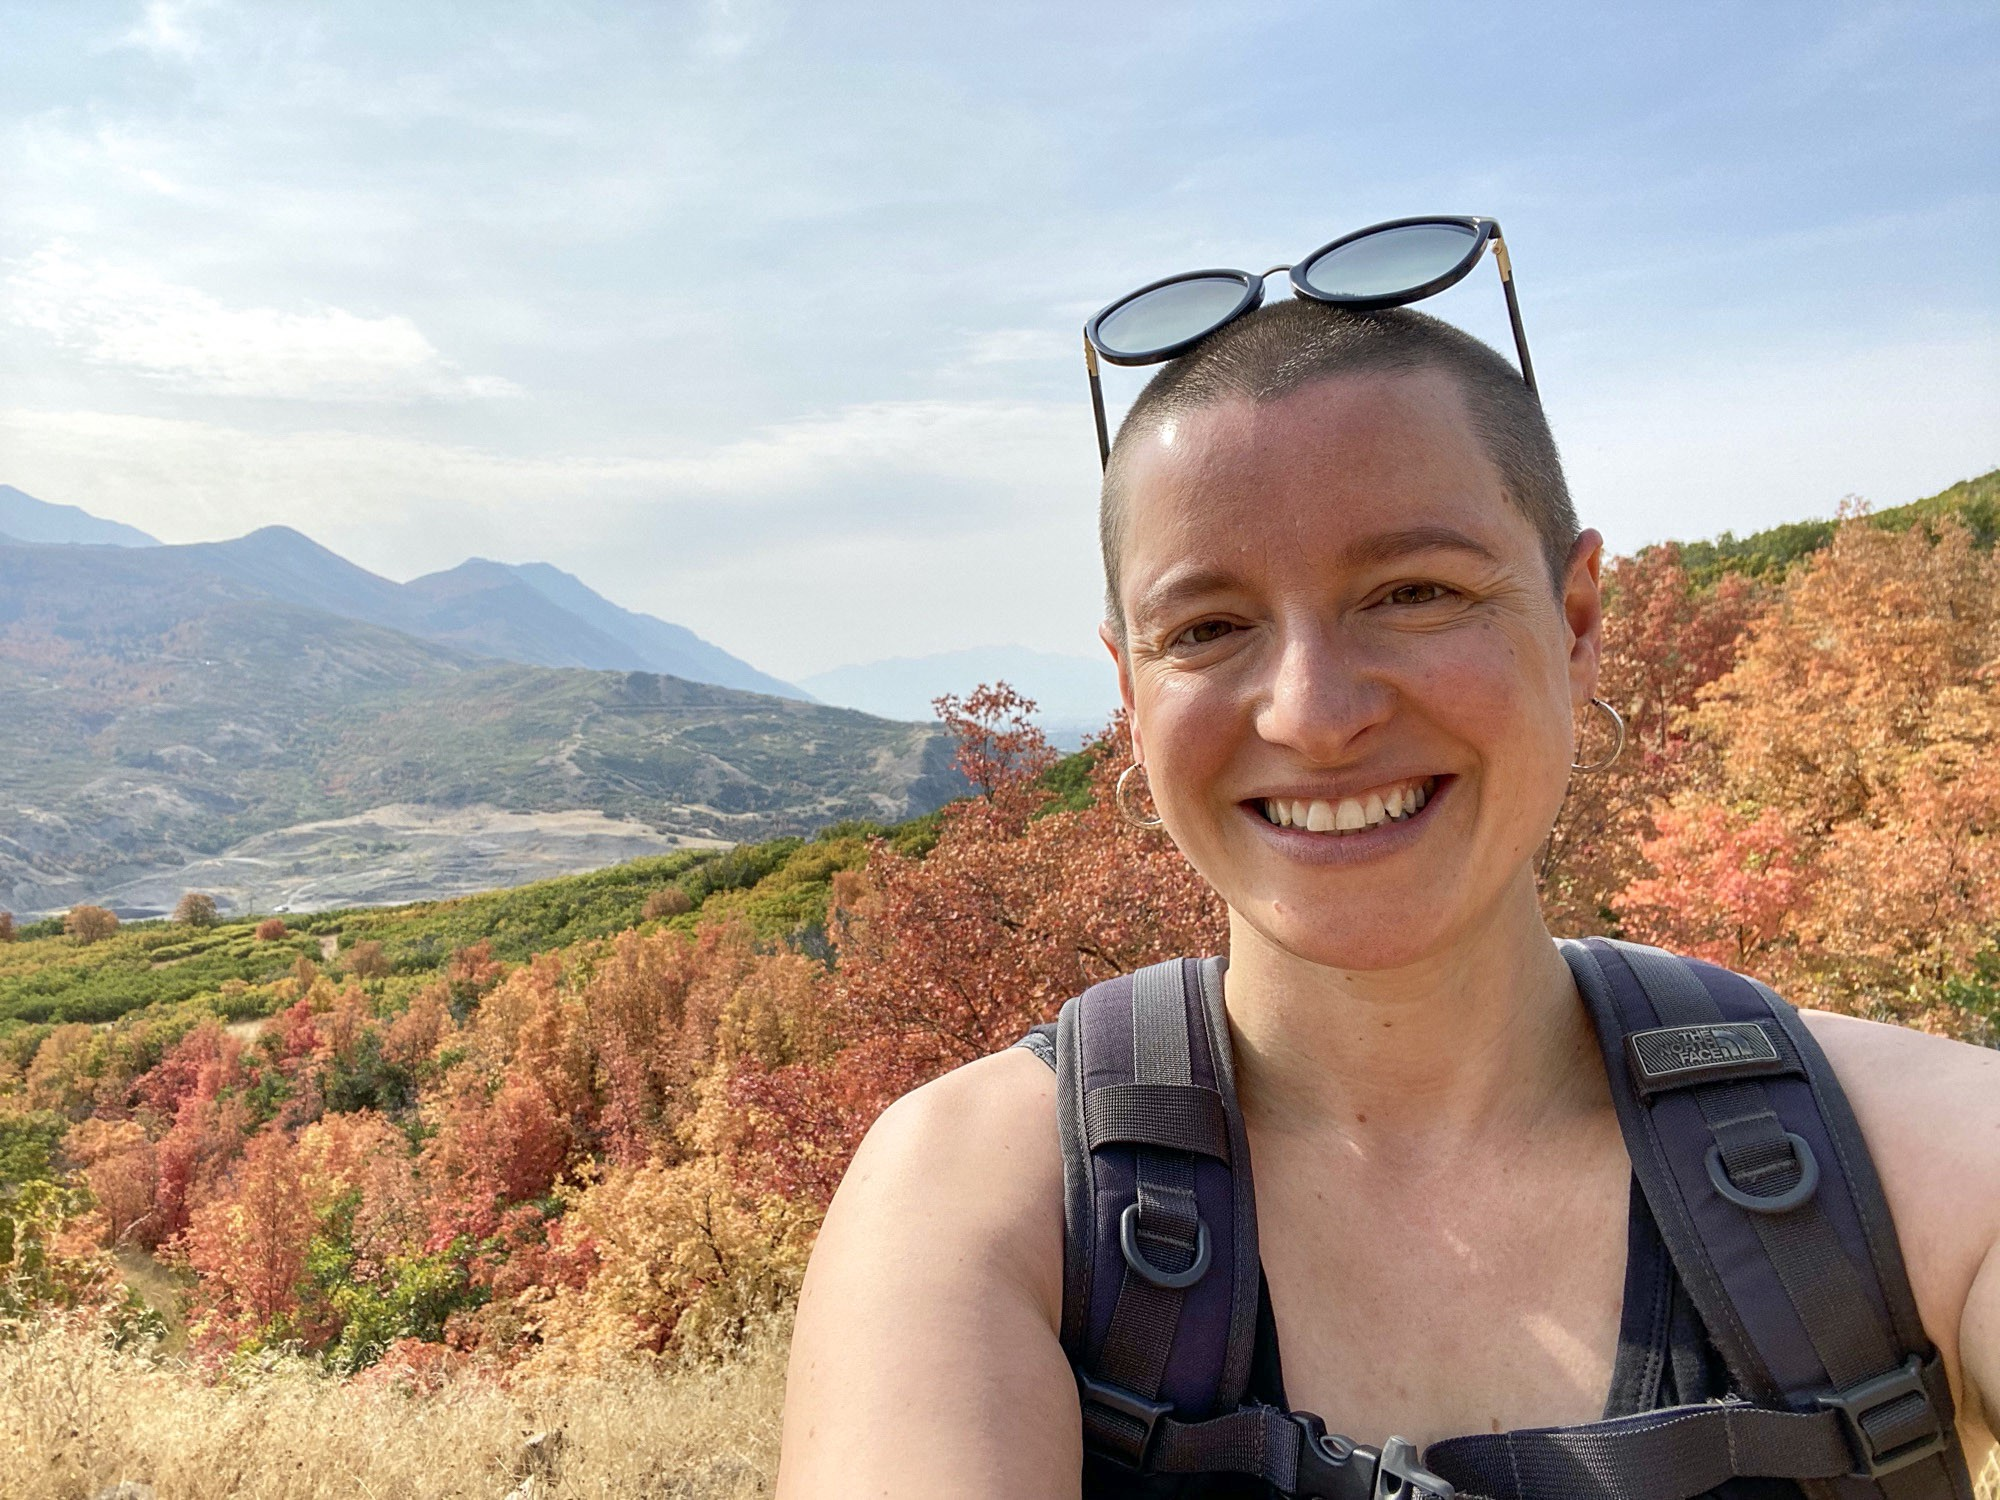 Sarah Dopp is standing on the top of a hill on a hike with autumn leaves in the background. She is smiling.